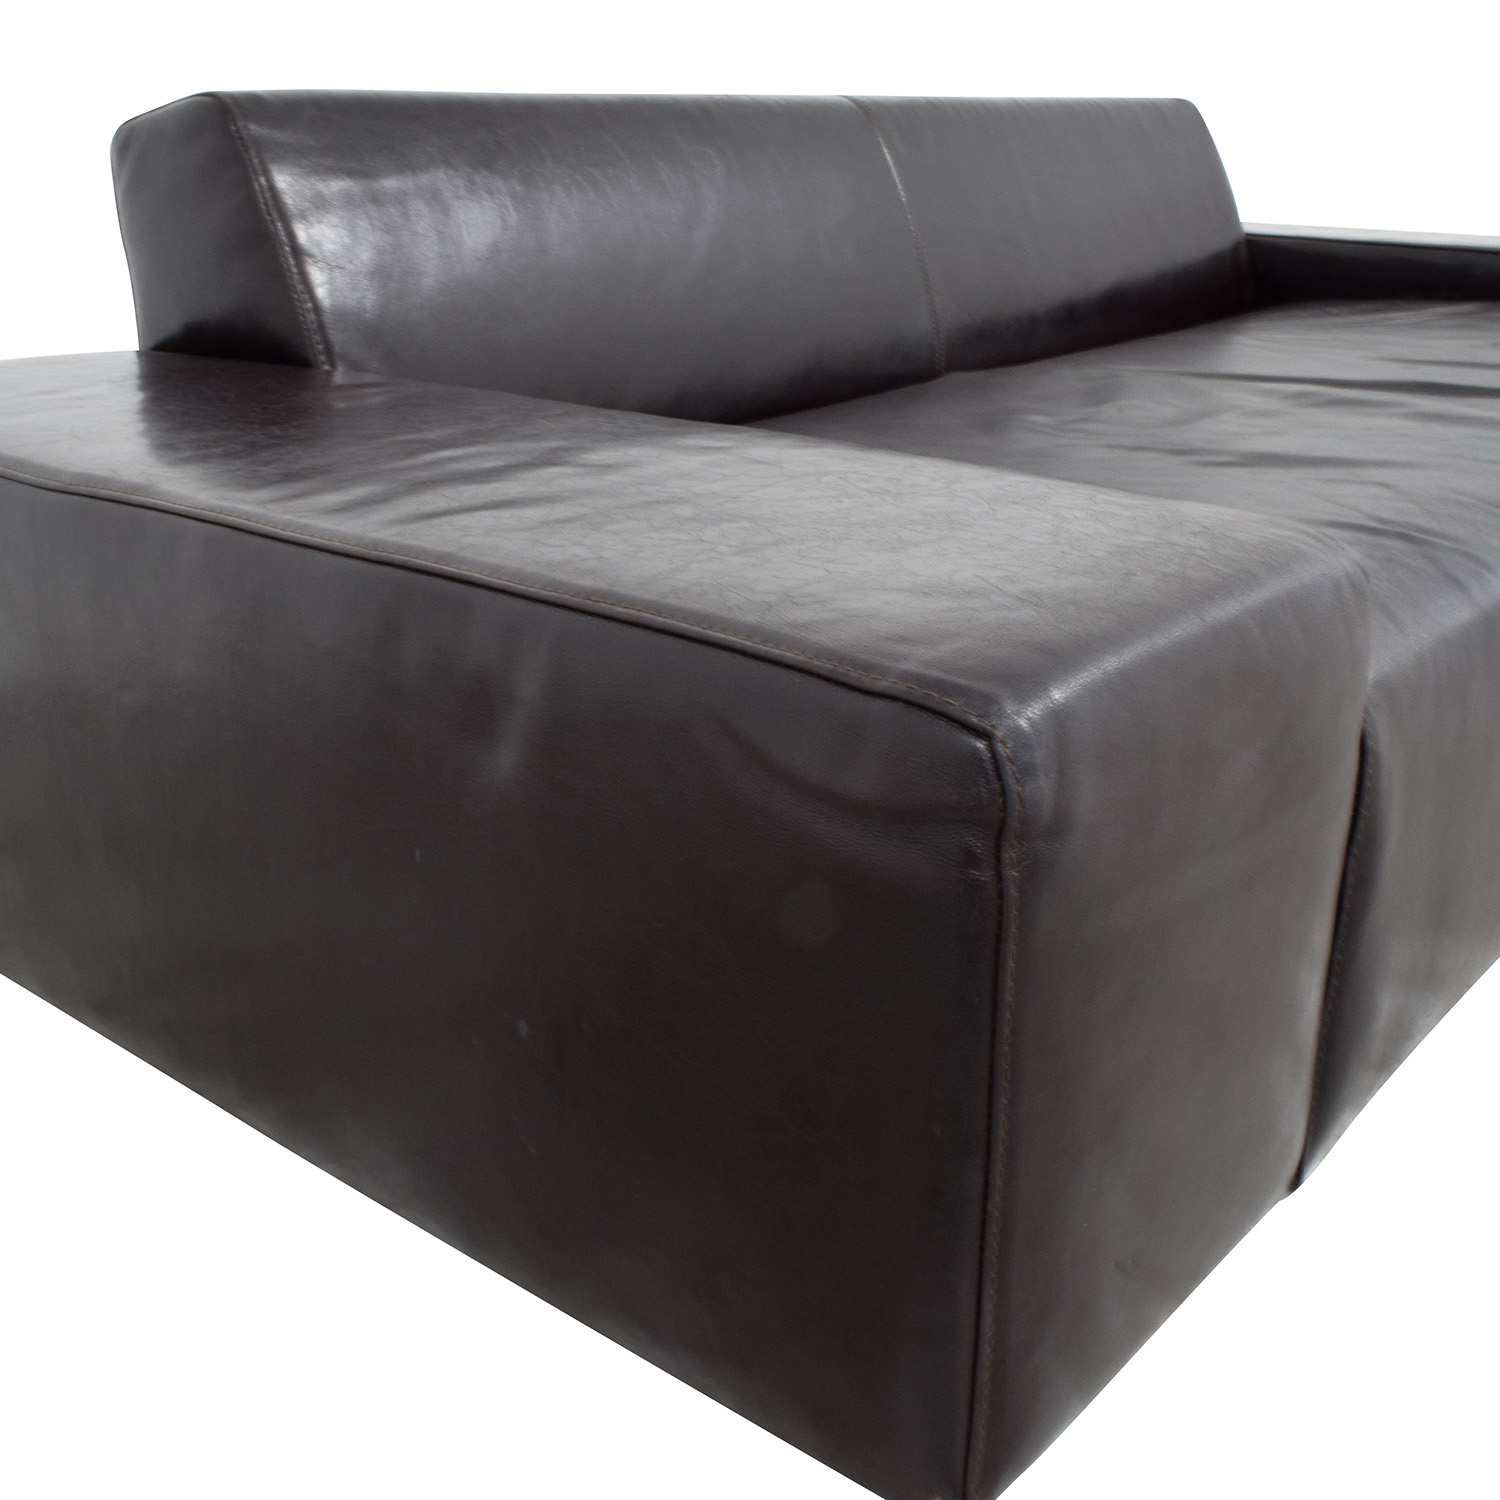 Nuovo Melodrom Nuovo Melodrom Siena Brown Leather Three Cushion Sofa for sale